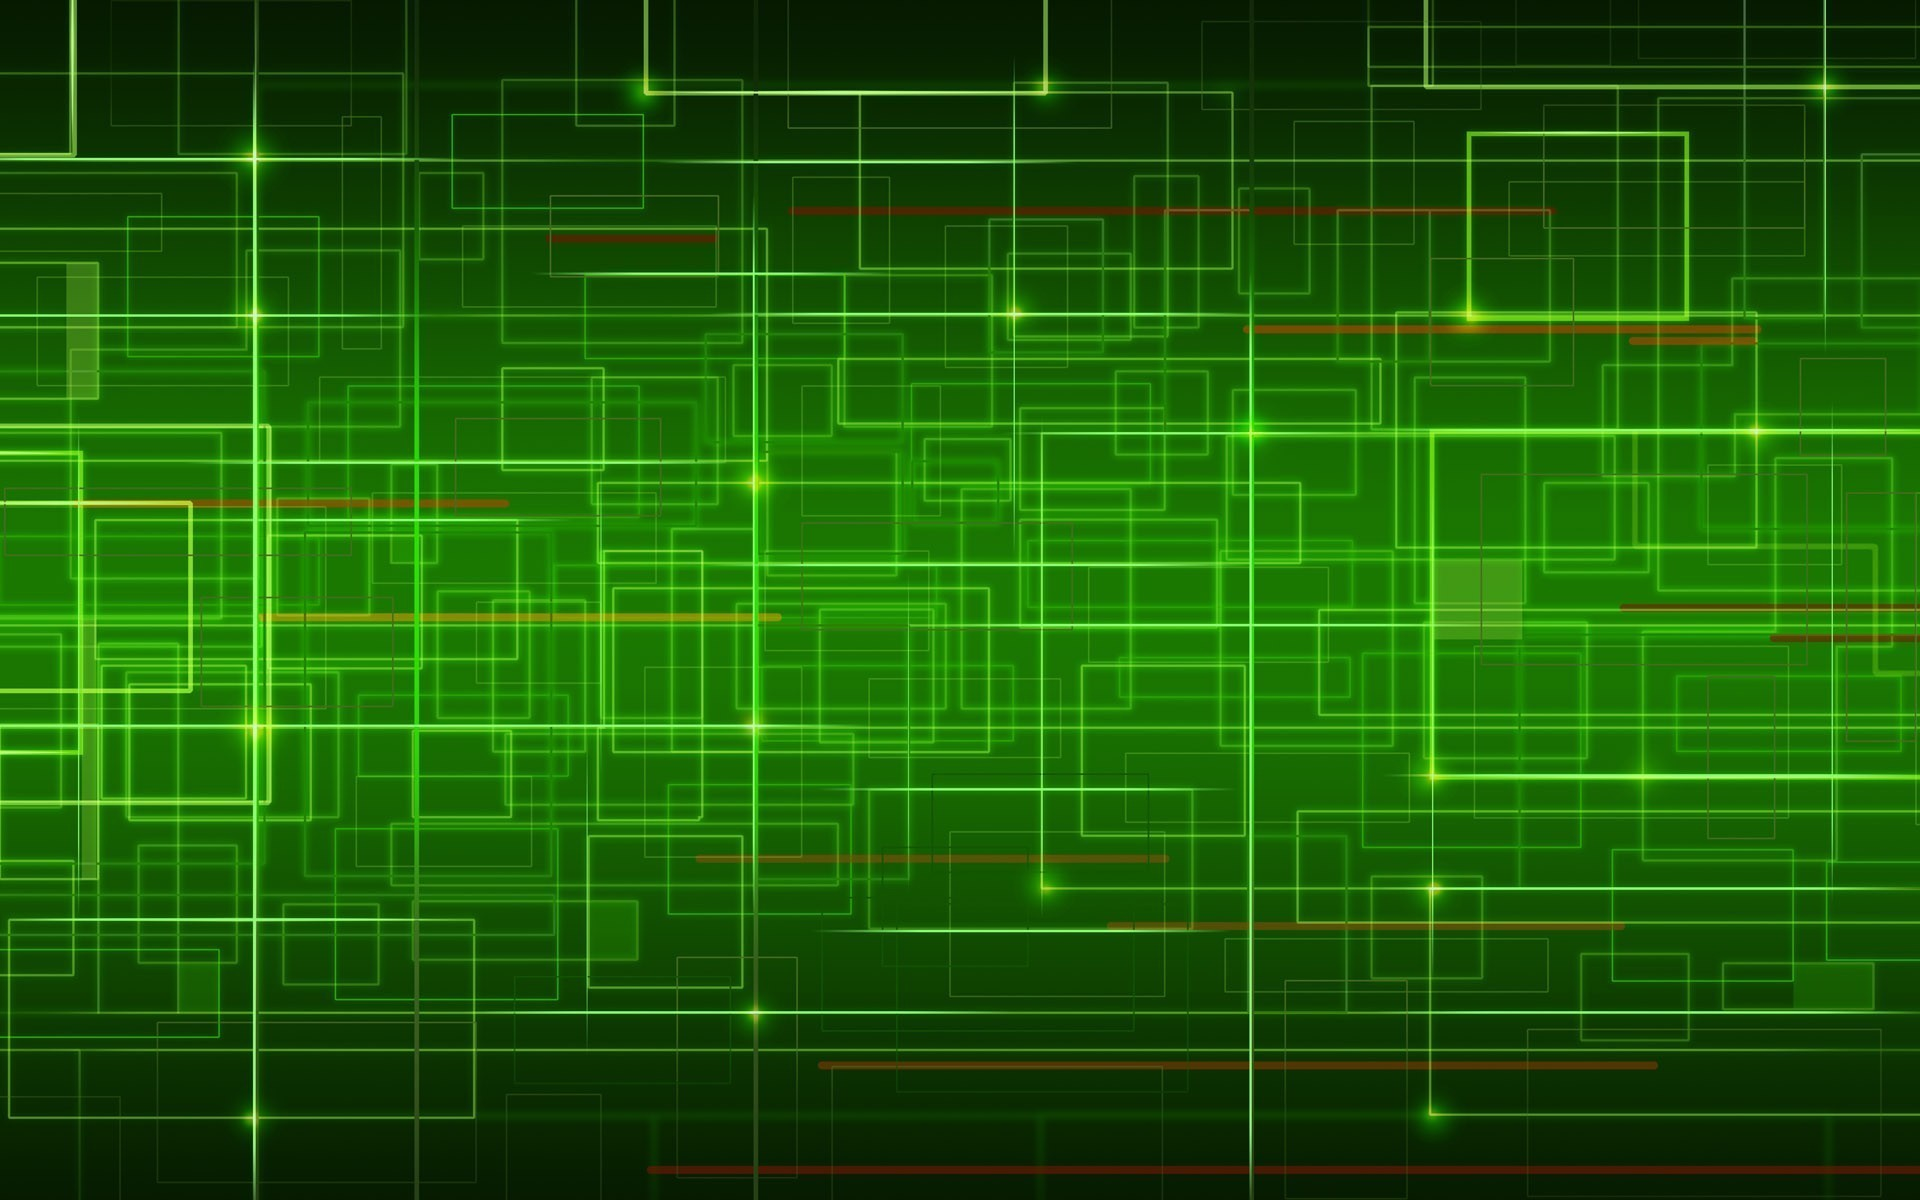 1920x1200 Images For Awesome Green Awesome Green Neon Backgrounds